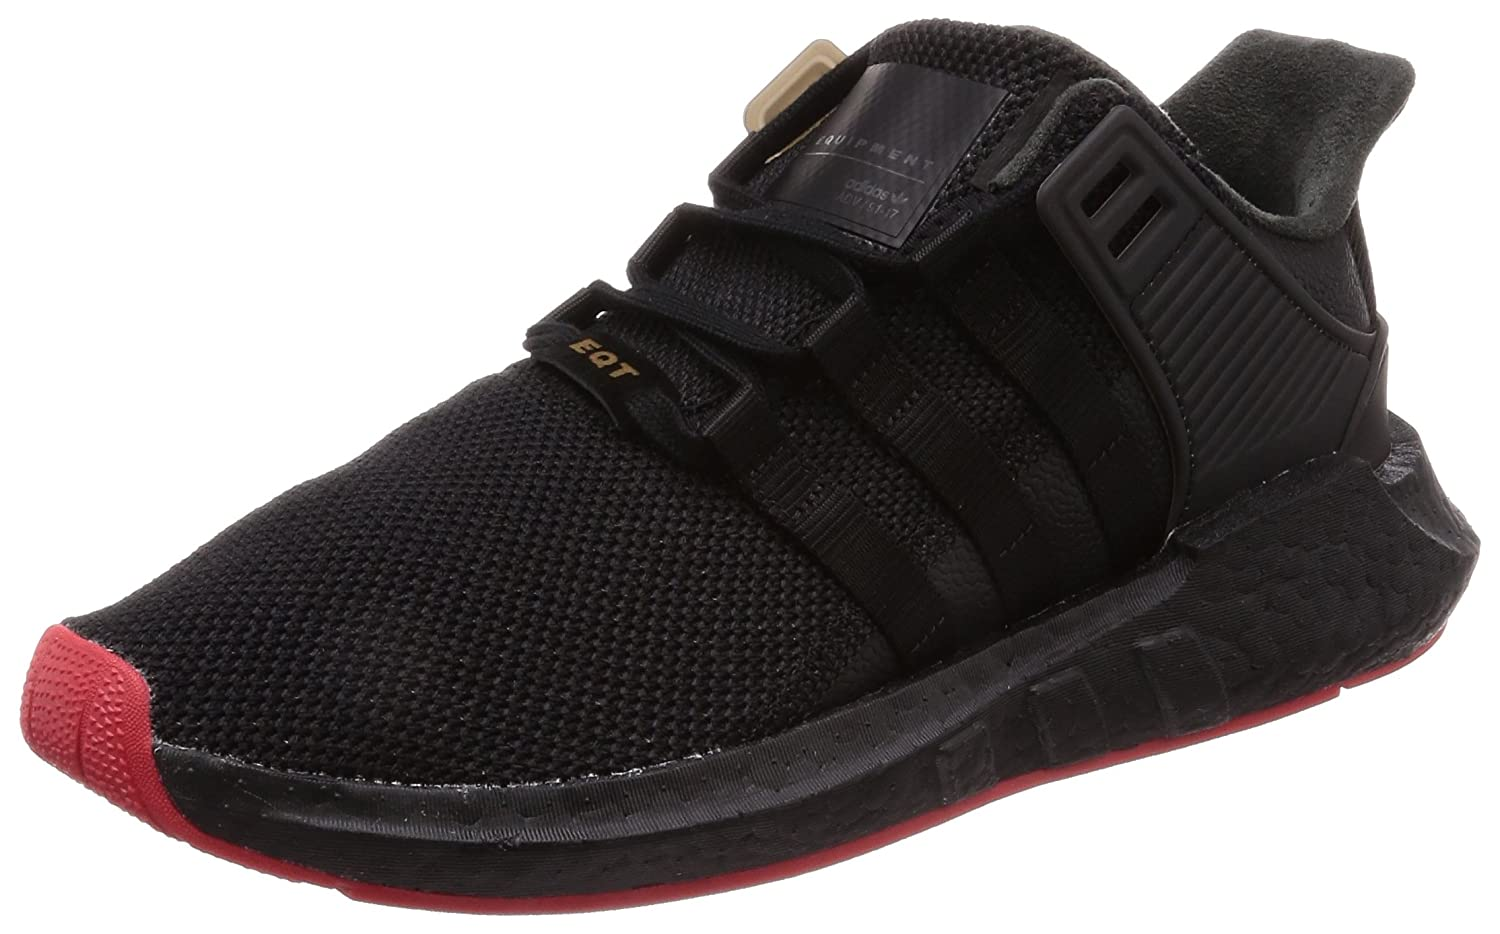 cheaper c1f74 56f6d adidas EQT Support 91/17 Black/Red CQ2394